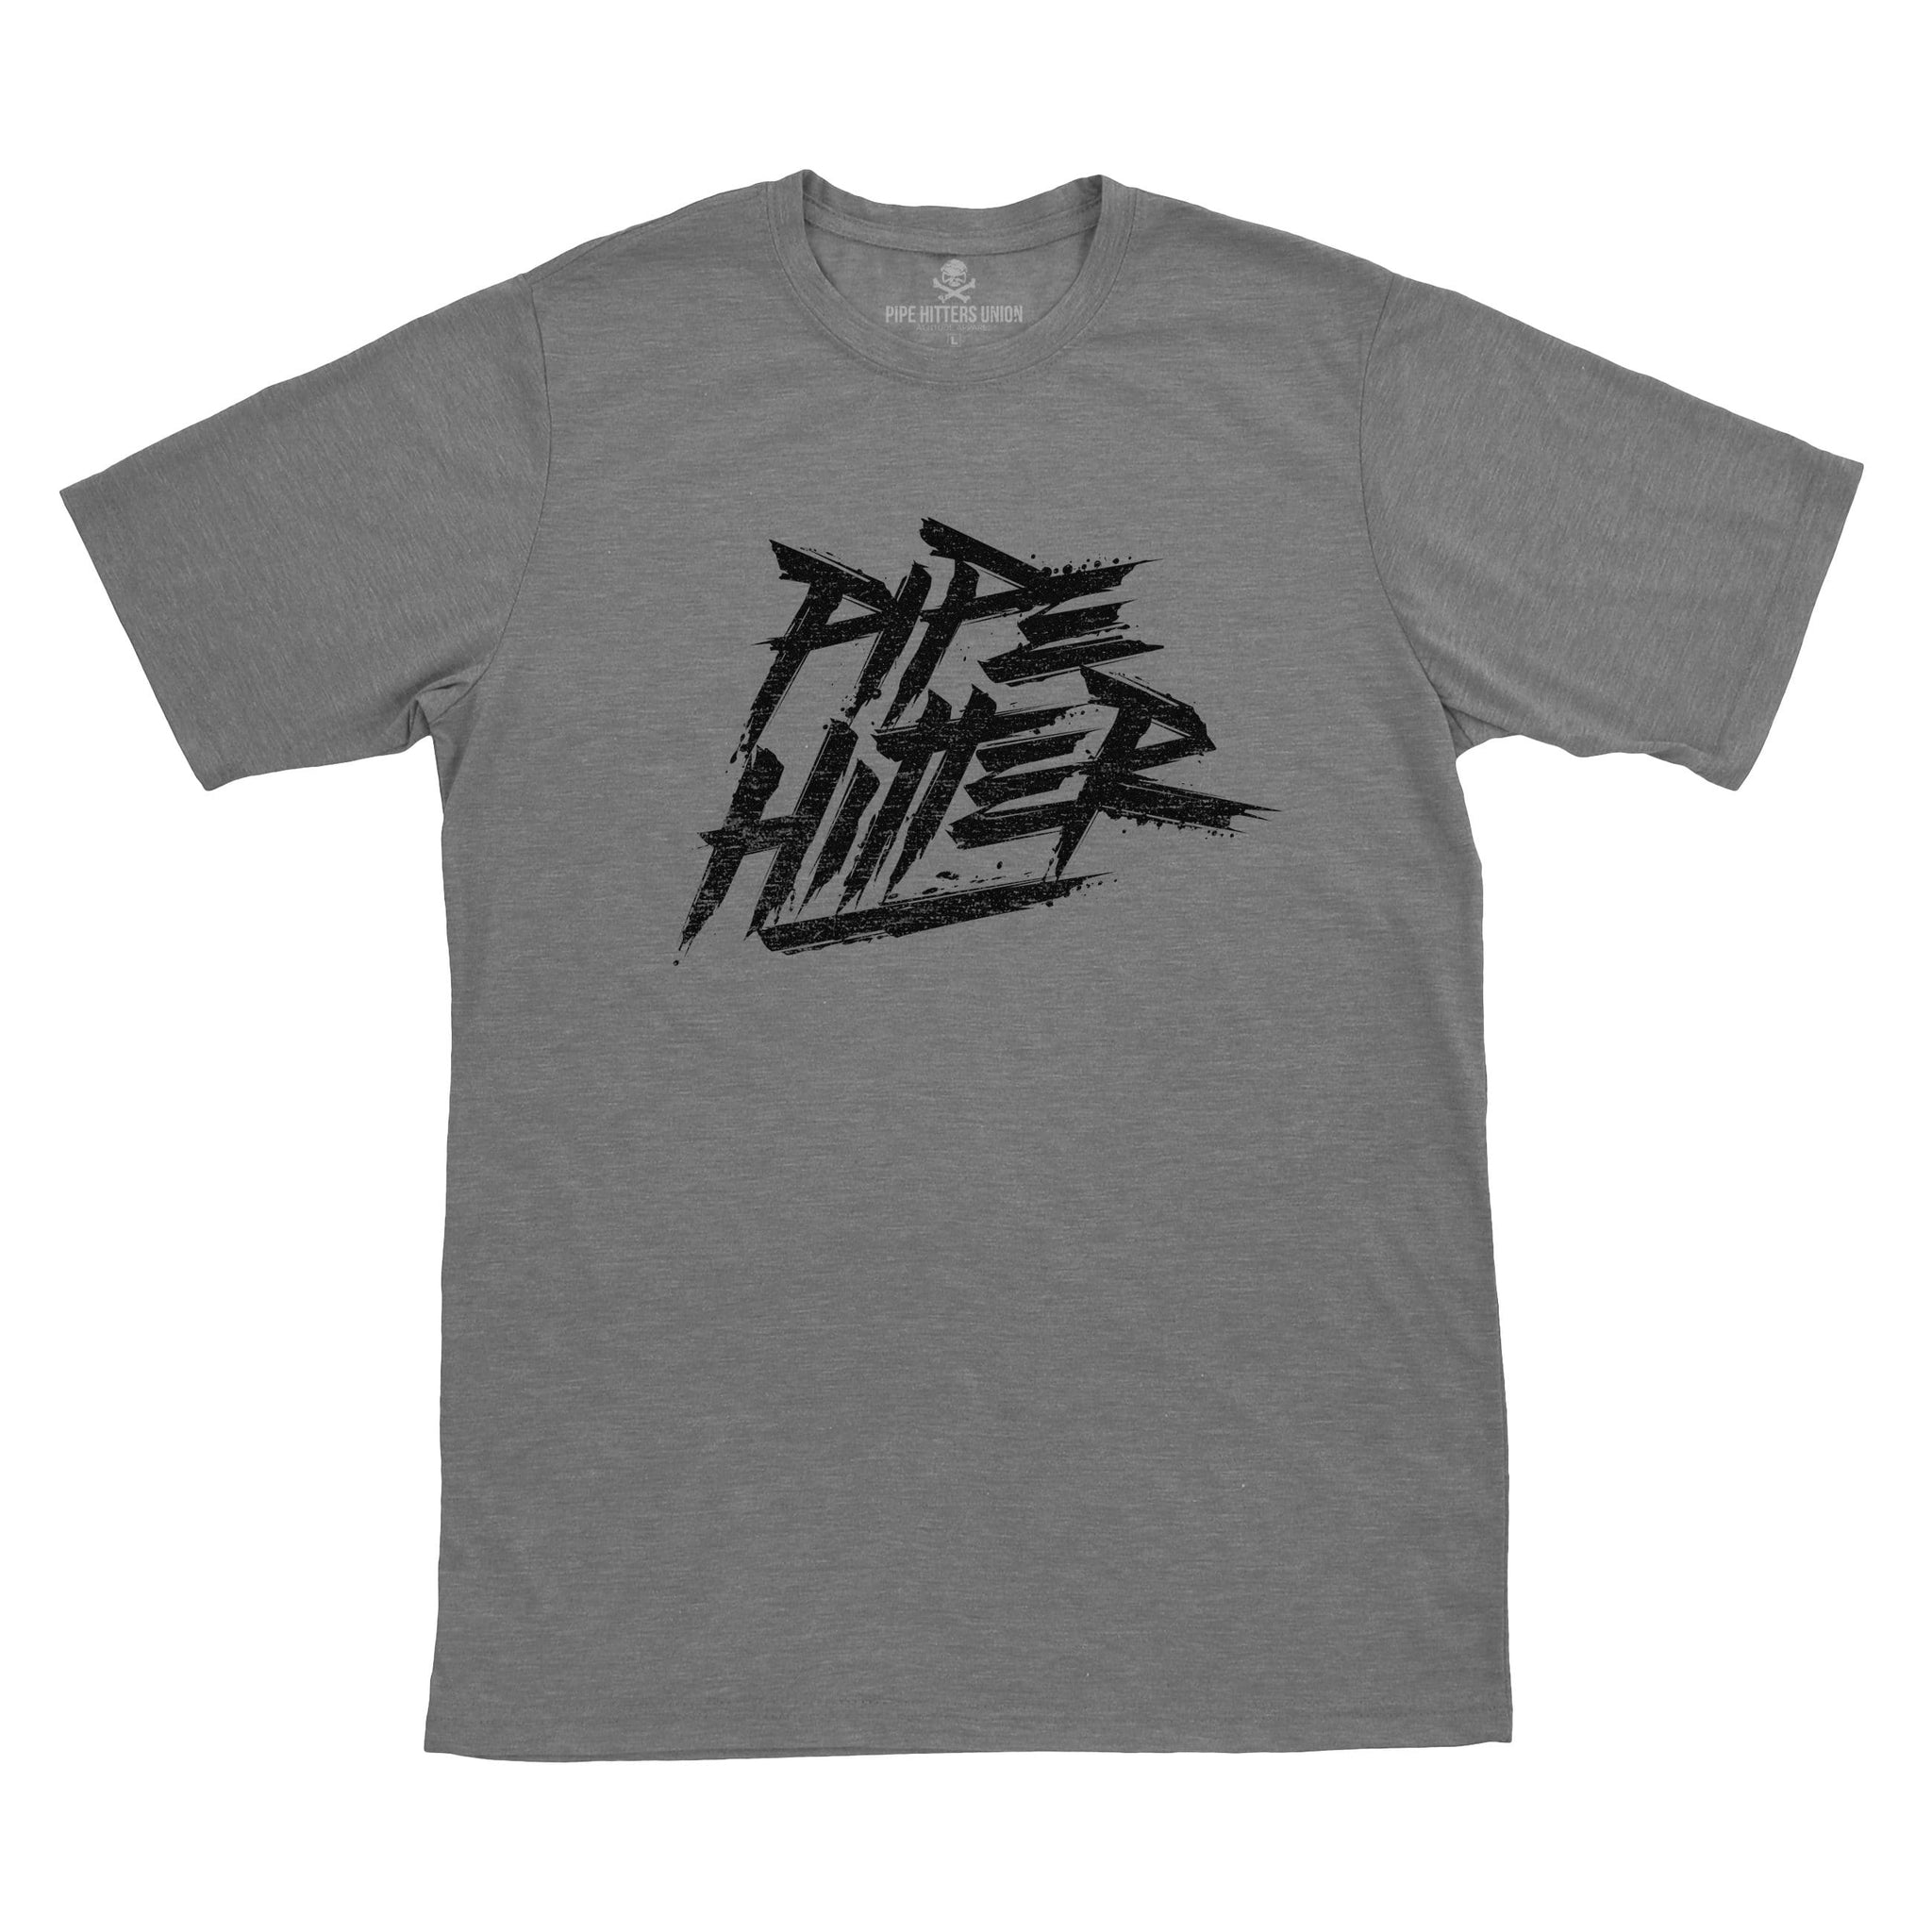 Pipe Hitter - Grey/Black - T-Shirts - Pipe Hitters Union